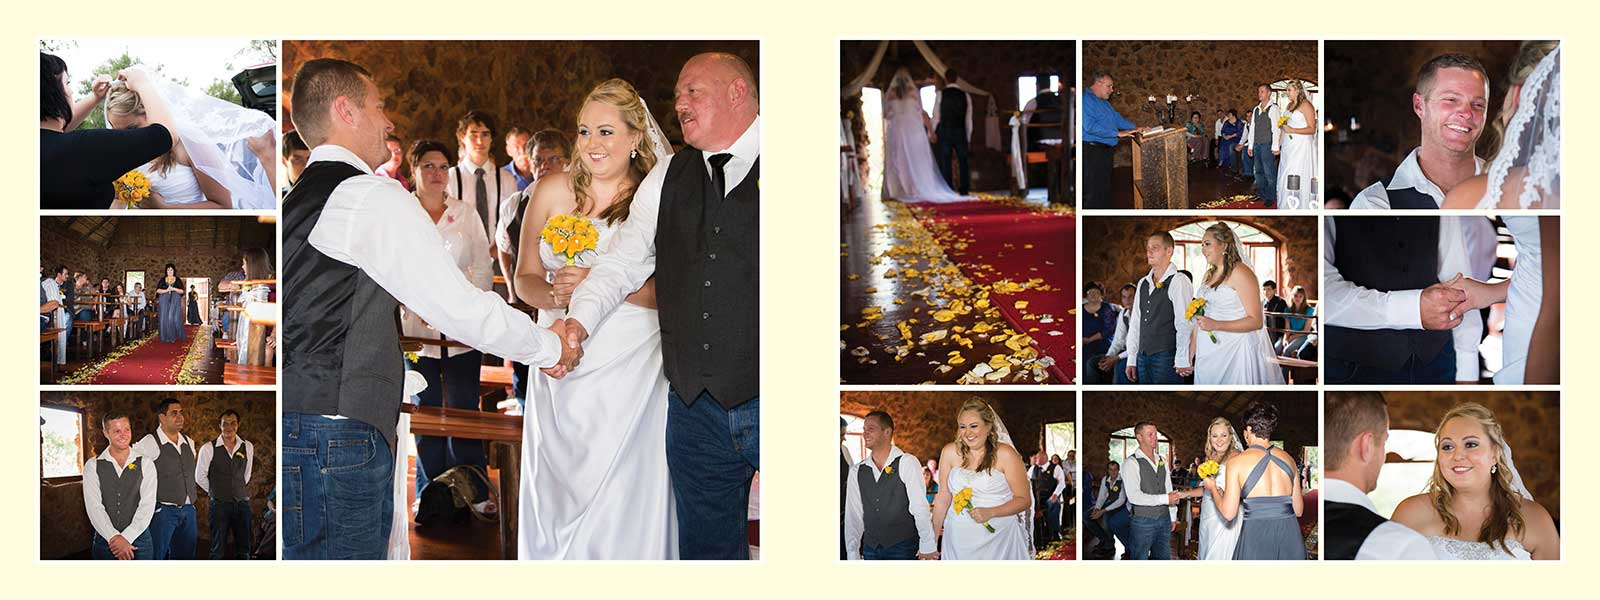 Roseview Hill Wedding Ceremony